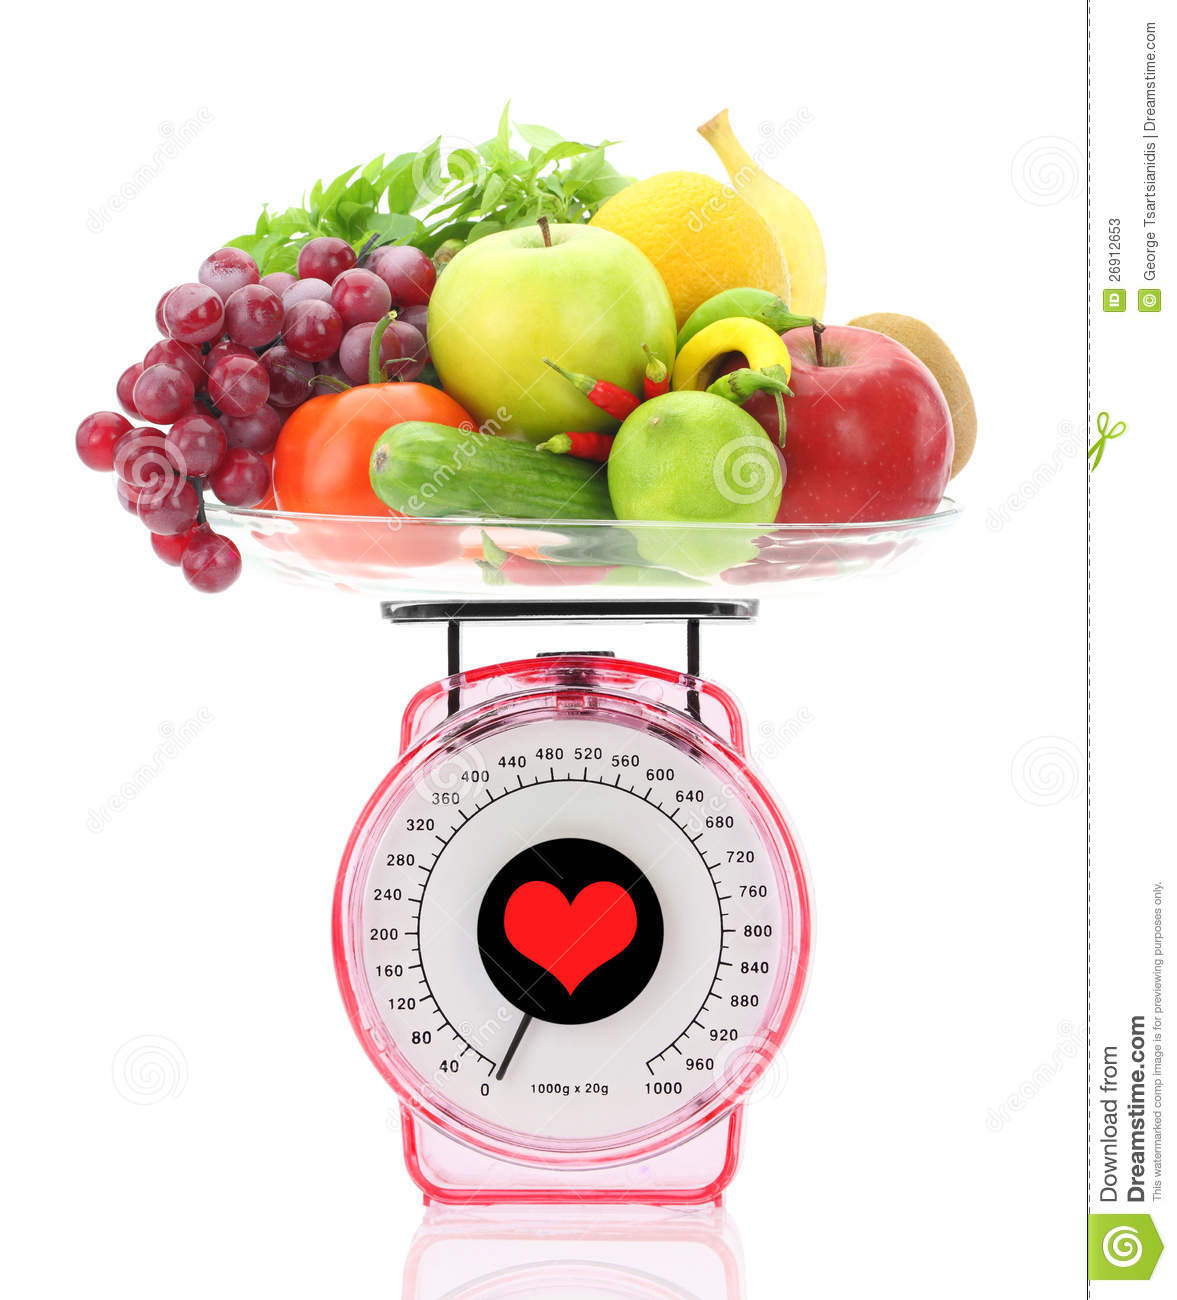 Kitchen Scale With Fruits And Vegetables Stock Photos ...